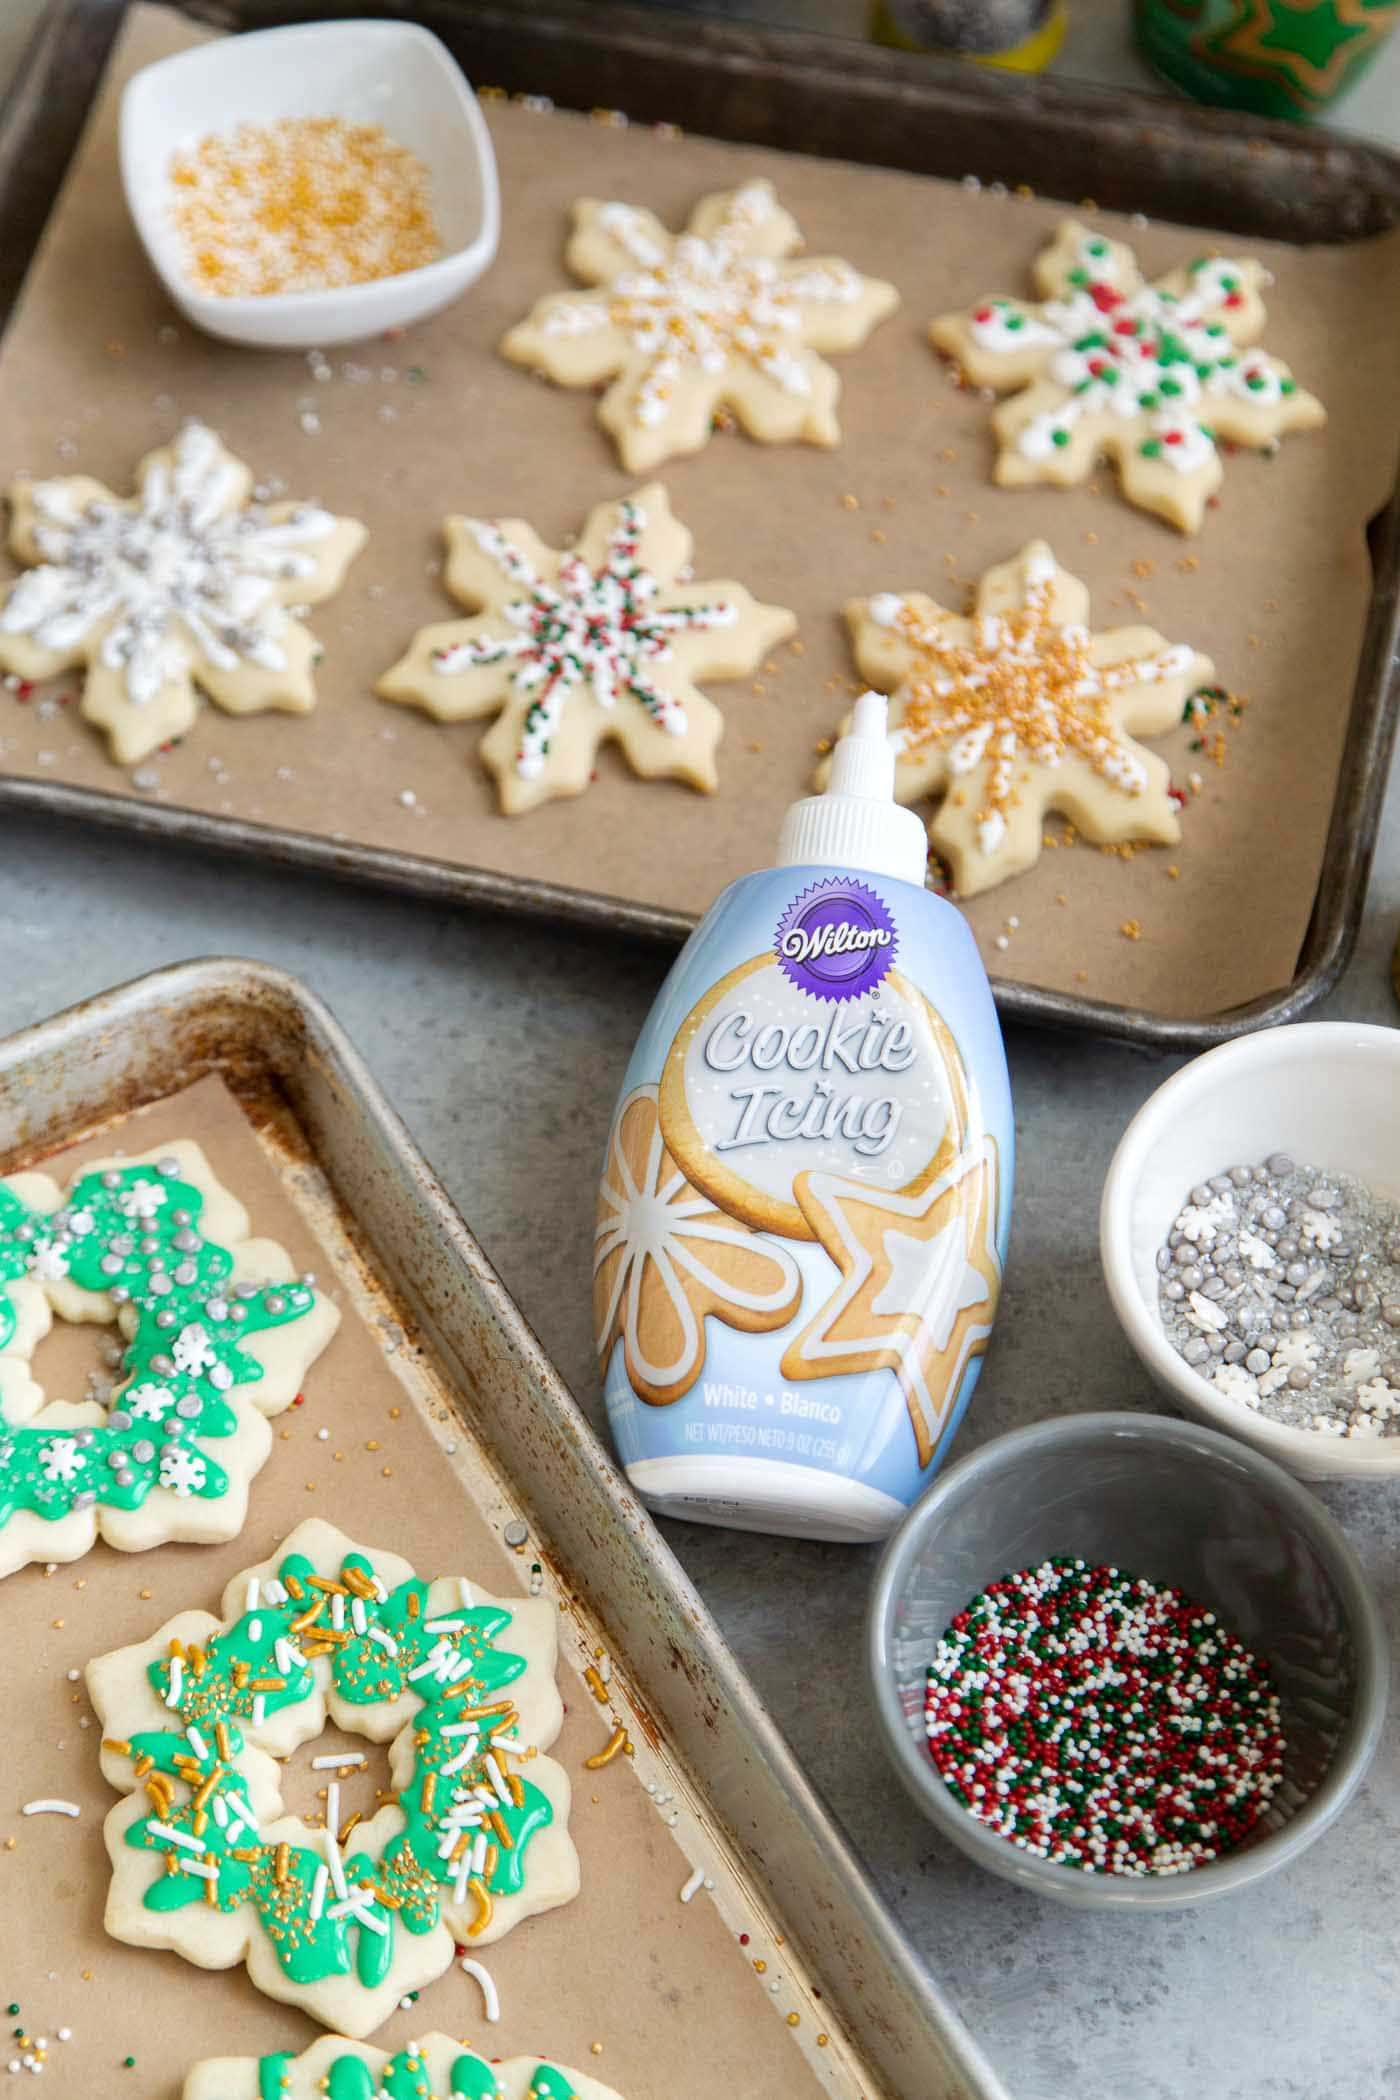 Decorating with Cookie Icing